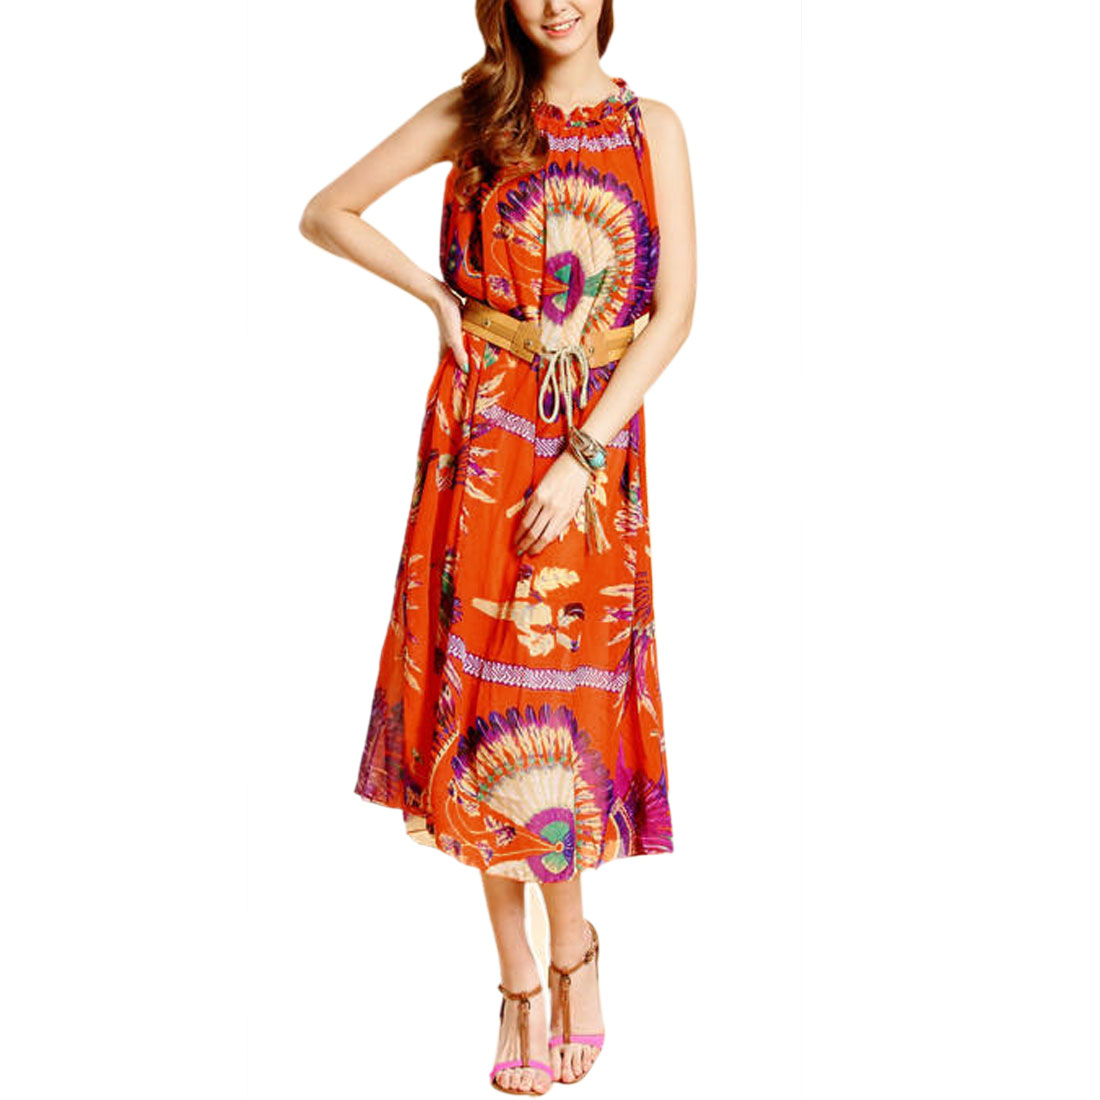 Ladies Boat Neck Belted Casual Dress Orange Red Purple S